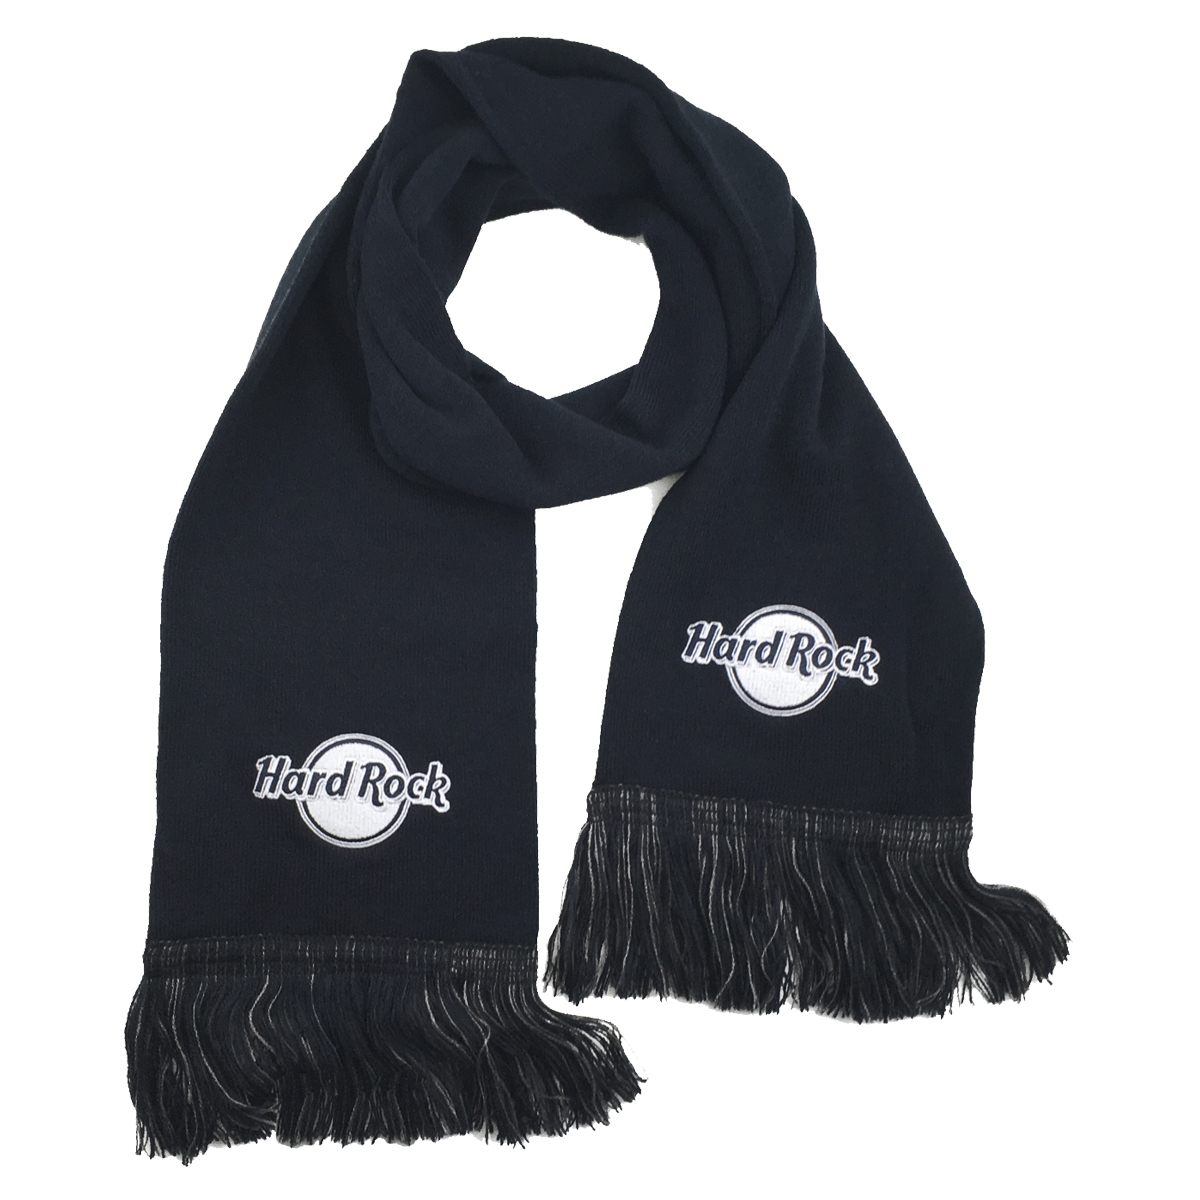 HR Scarf Fringed Black Charcoal 0